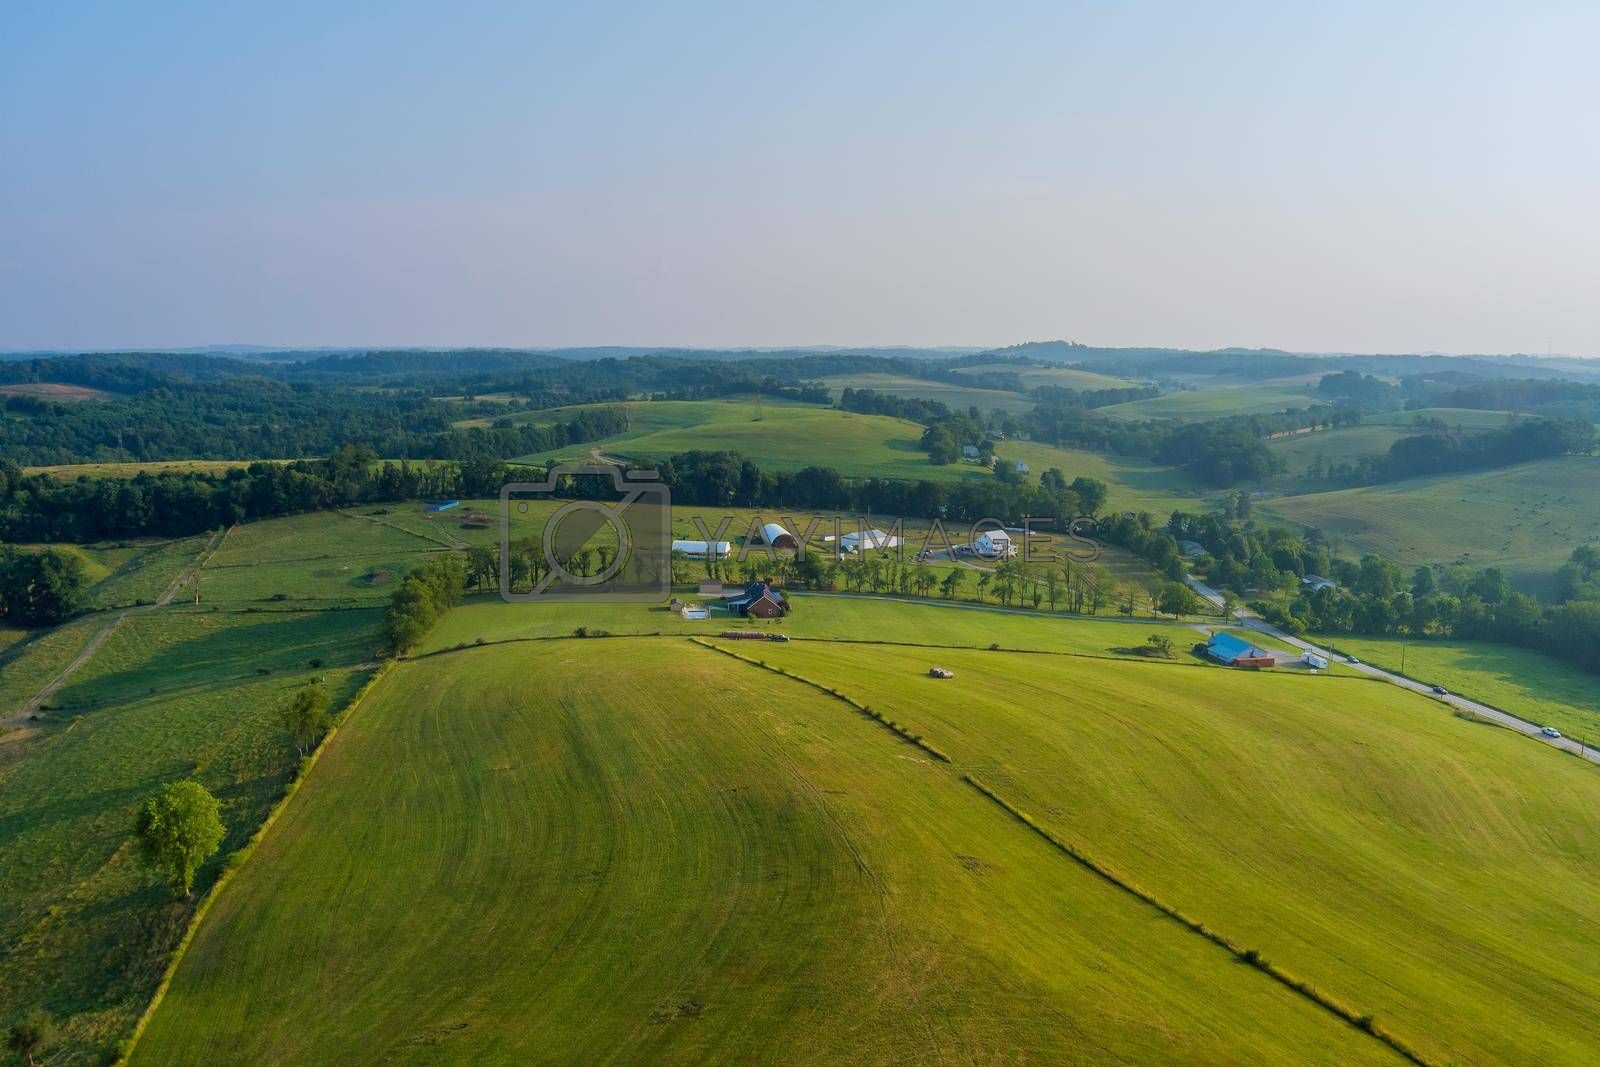 Royalty free image of A small Bentleyville town village behind trees and hills the farm meadow in Pennsylvania, US by ungvar